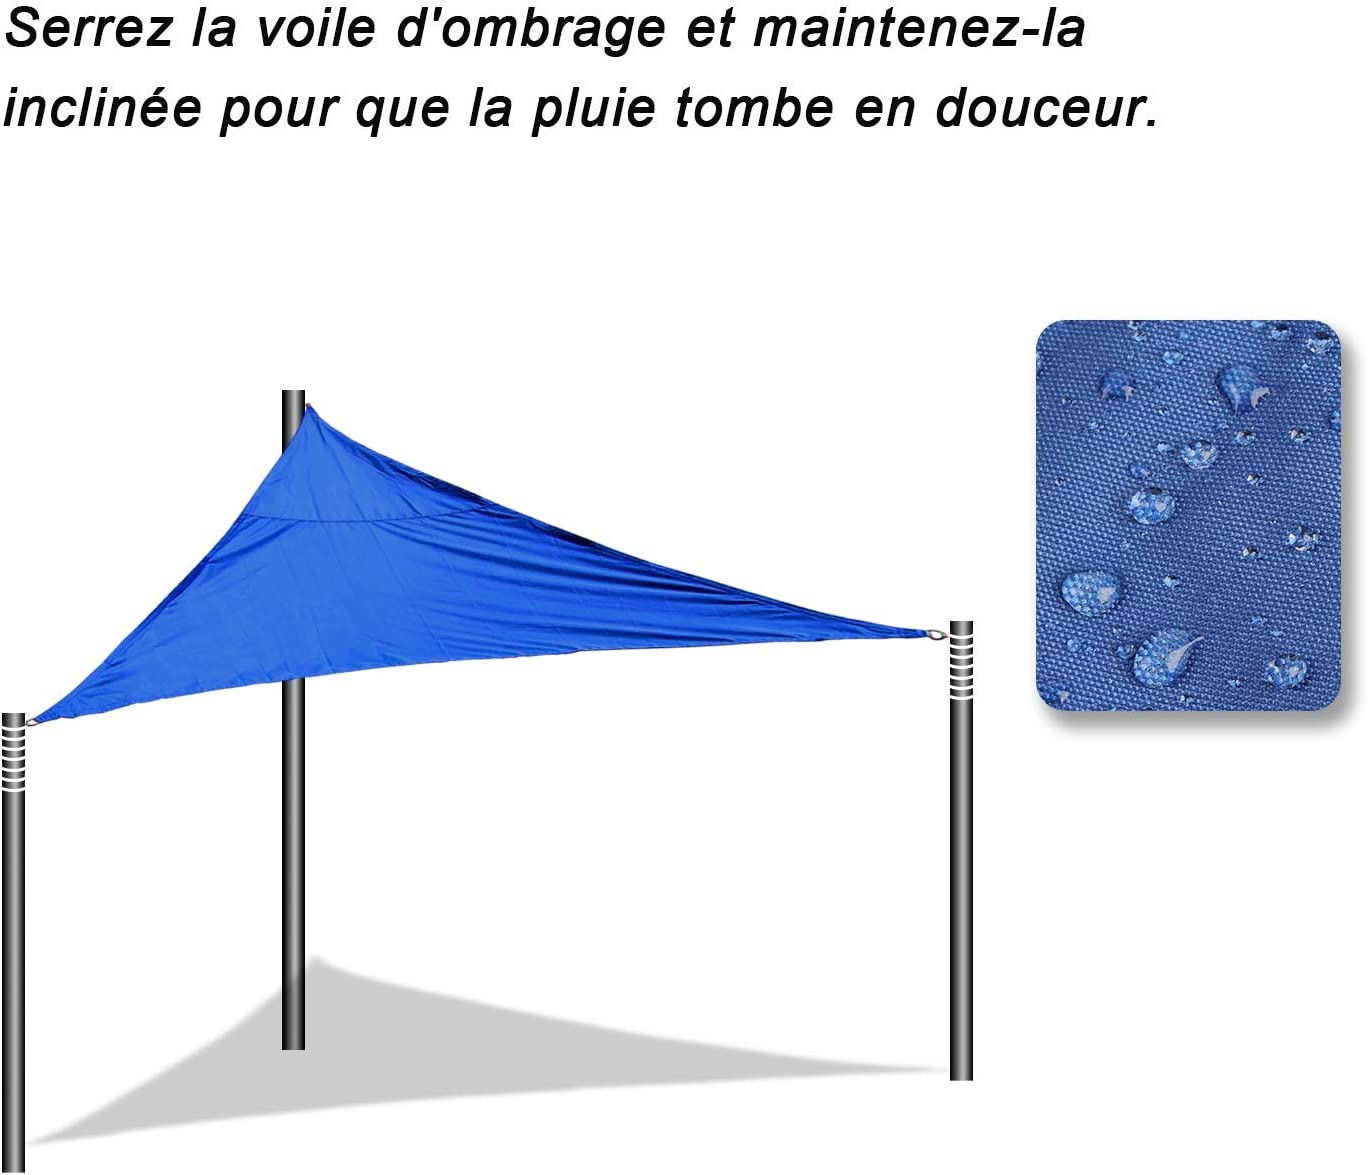 pour Jardin Terrasse Camping,Rose OMNIPRO Voile dombrage Triangulaire 2.4x3M Imperm/éable UV Protection en Polyester